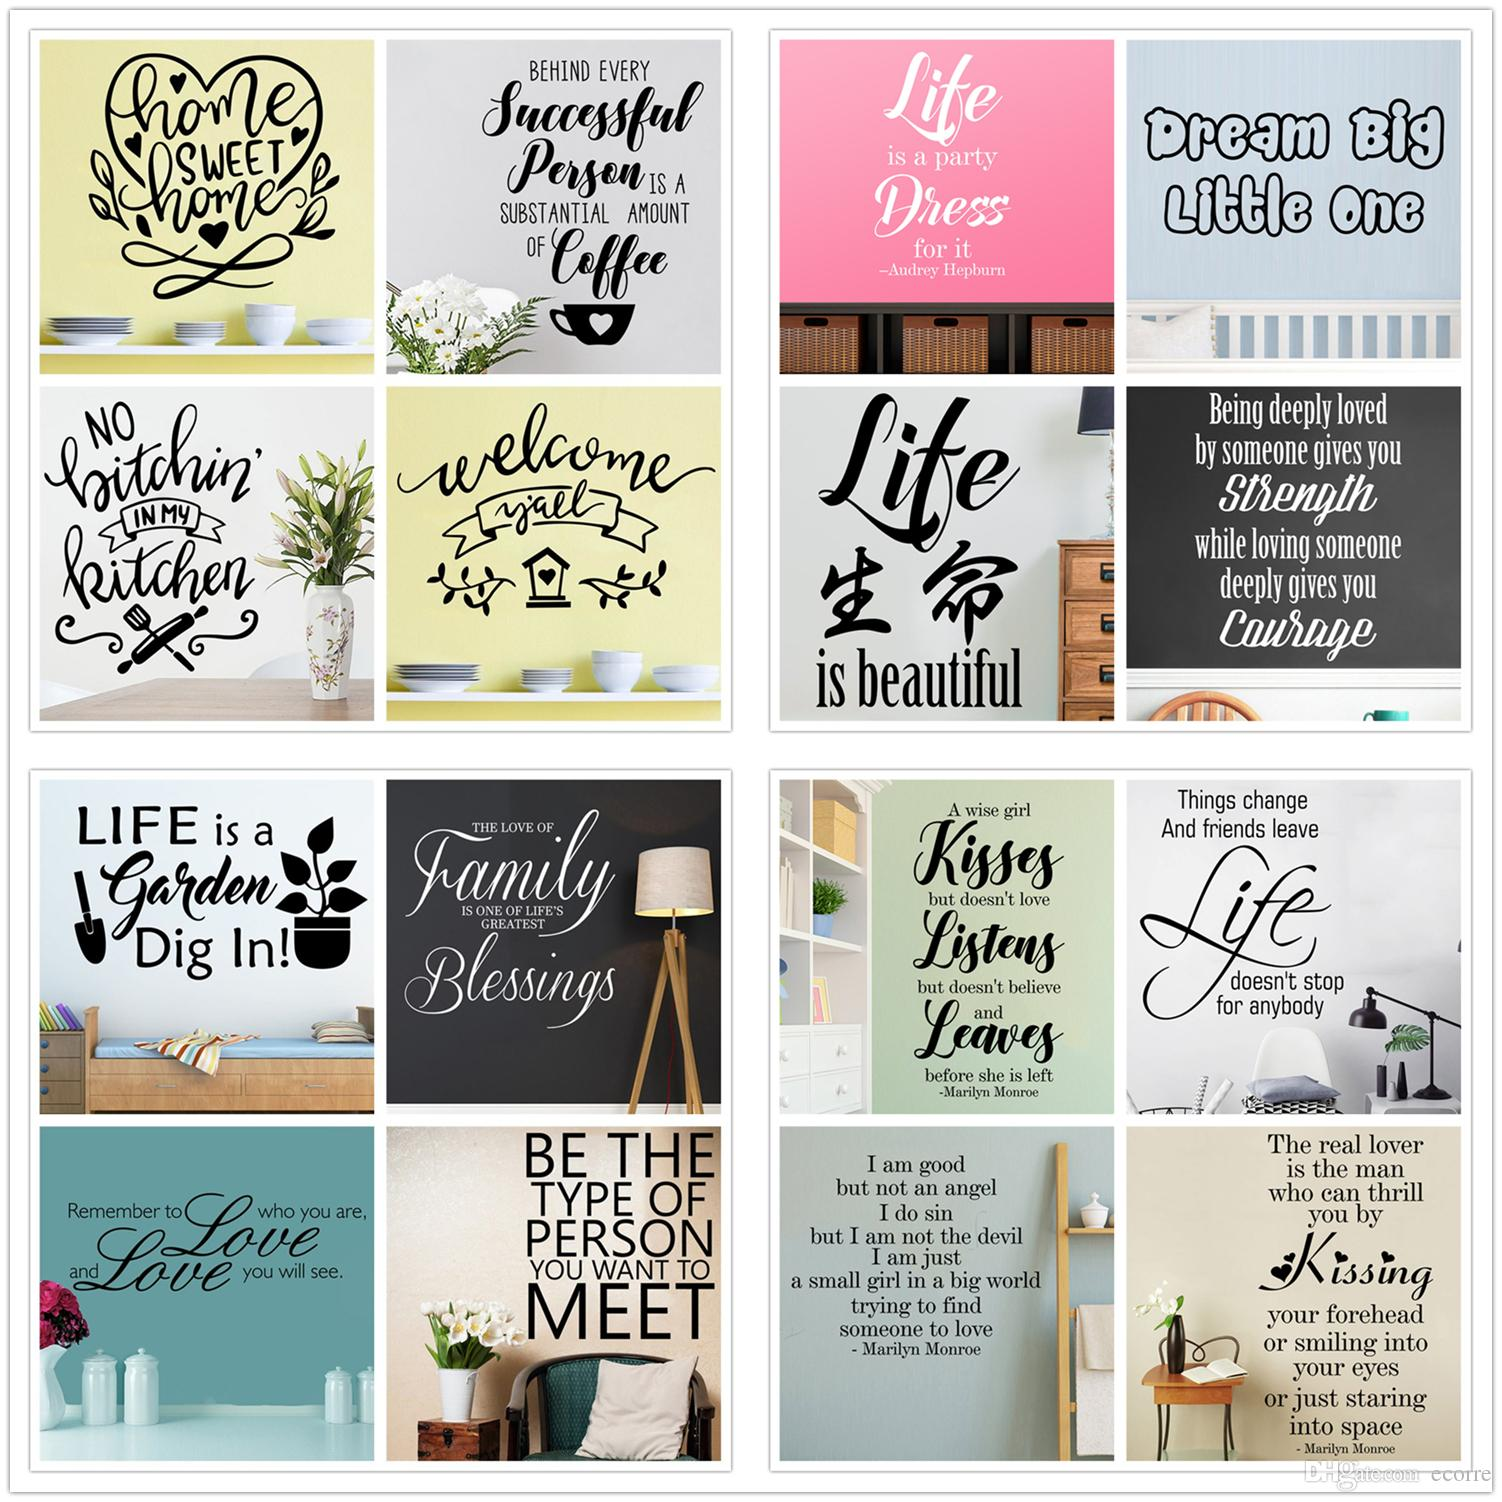 Famous Quotes Wall Sticker Inspirational Wall Decal Vinyl Removable Wall Letters Phrase And Sayings Stickers Home Decor Decal Wall Murals Decal Wall Quotes ...  sc 1 st  DHgate.com & Famous Quotes Wall Sticker Inspirational Wall Decal Vinyl Removable ...